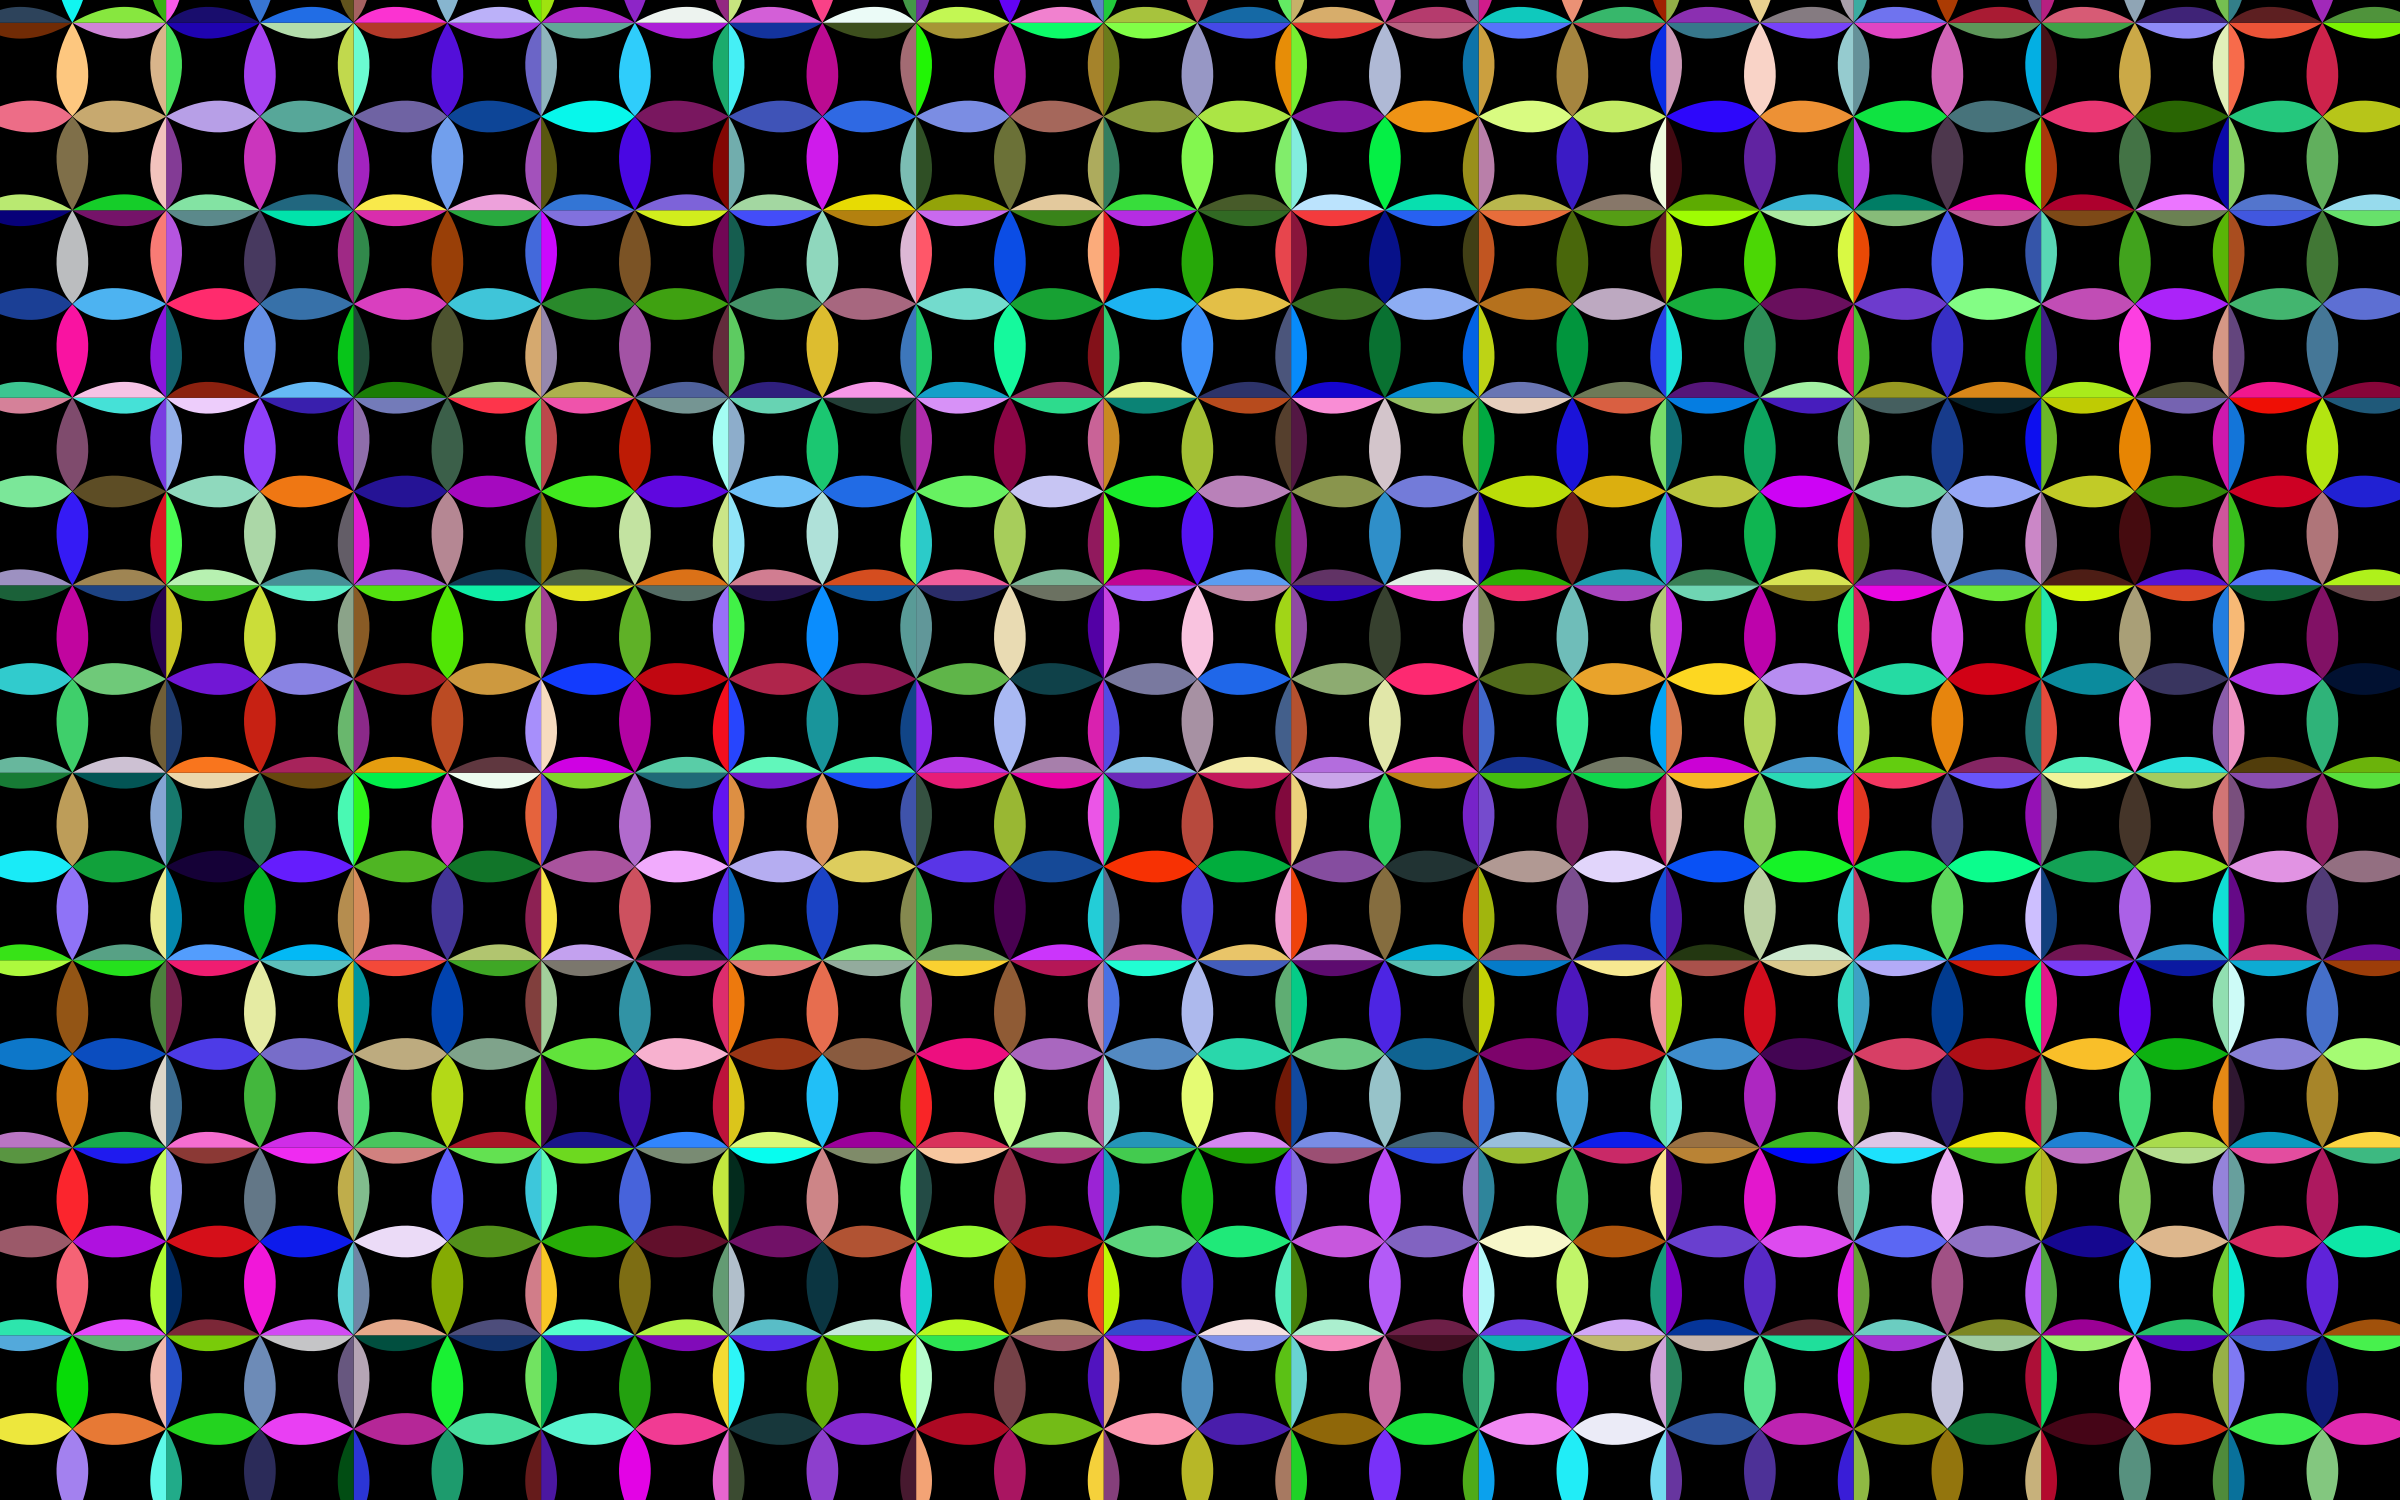 Prismatic Basic Pattern 2 by GDJ